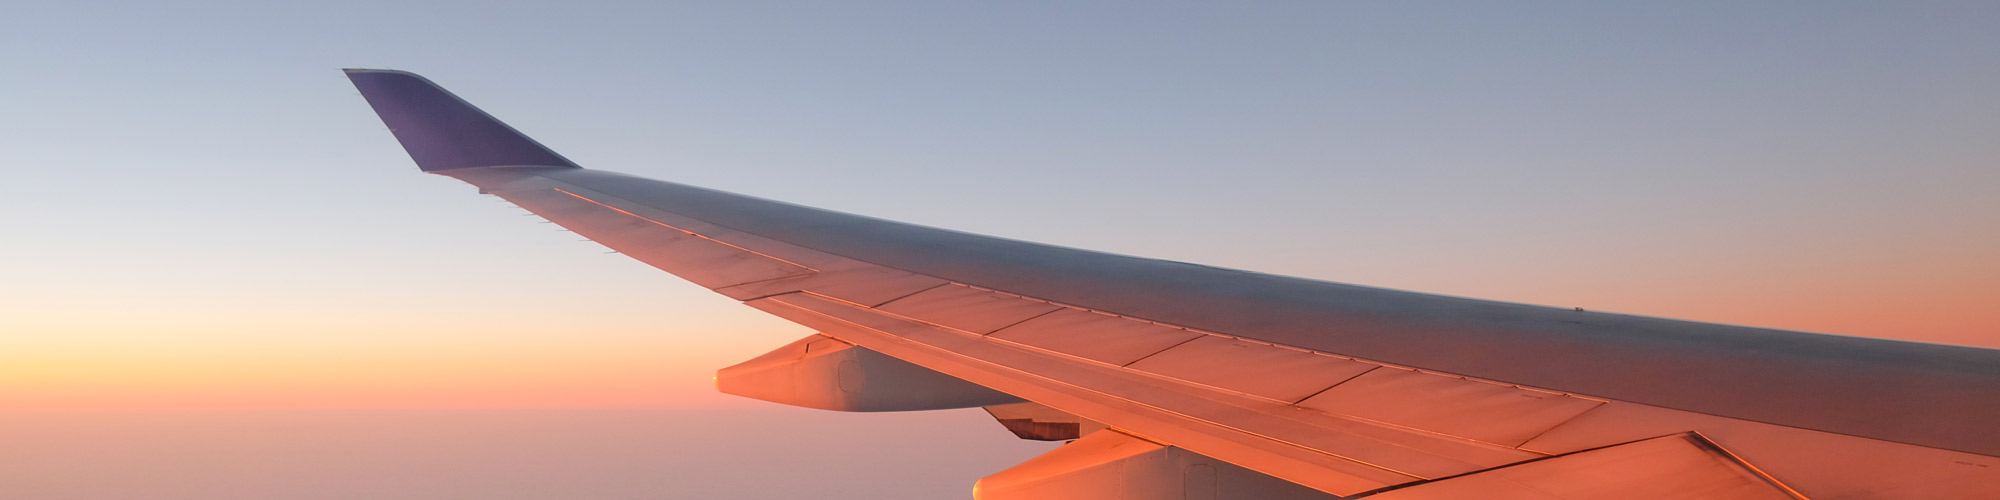 The Wing Manifesto: Welcome To Wing Two